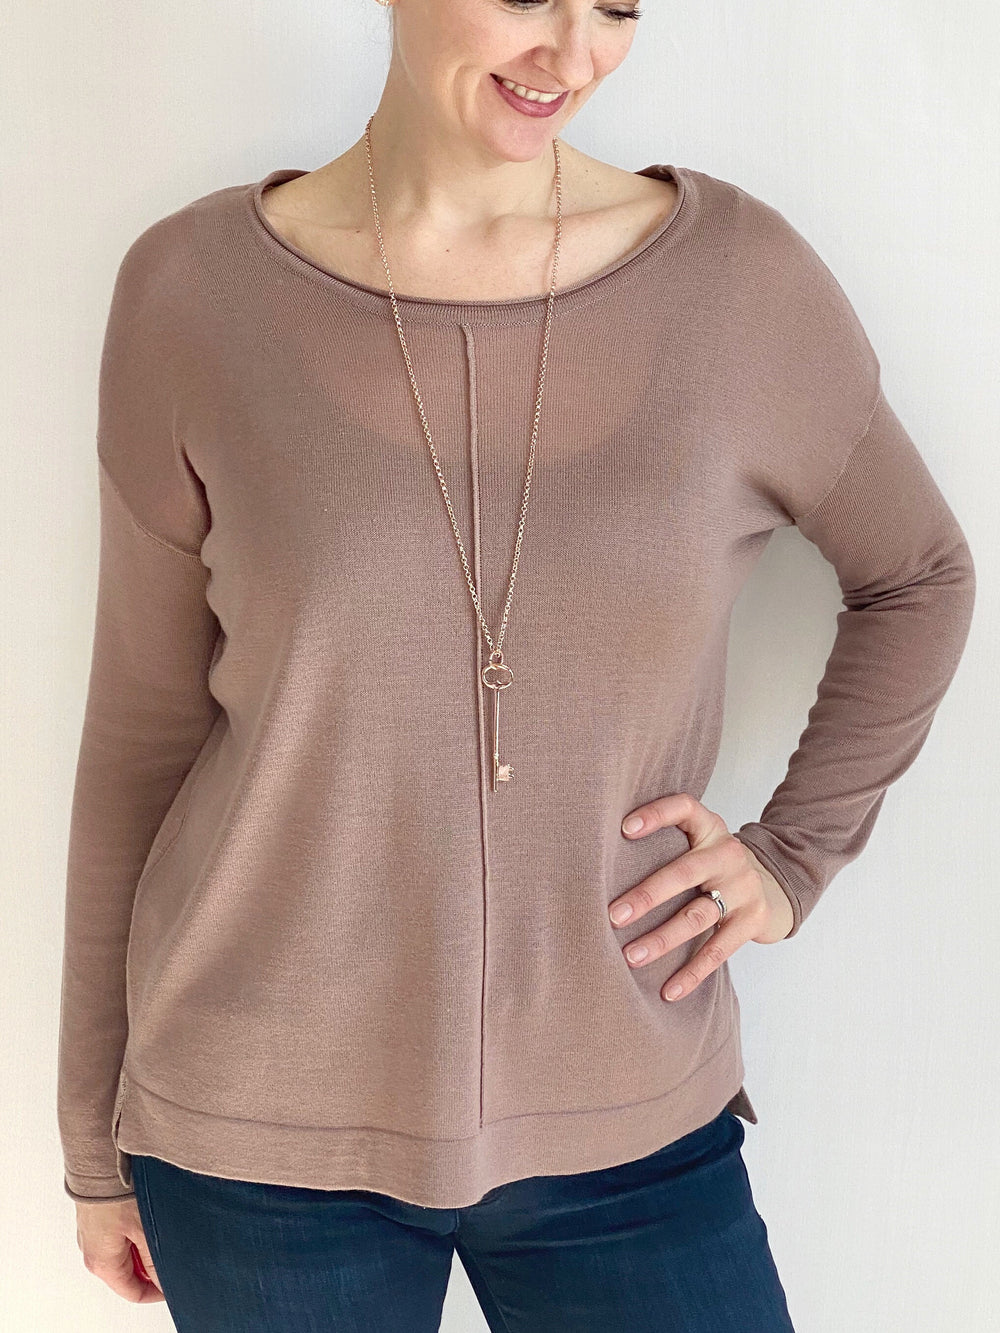 Orb Lightweight Sweater